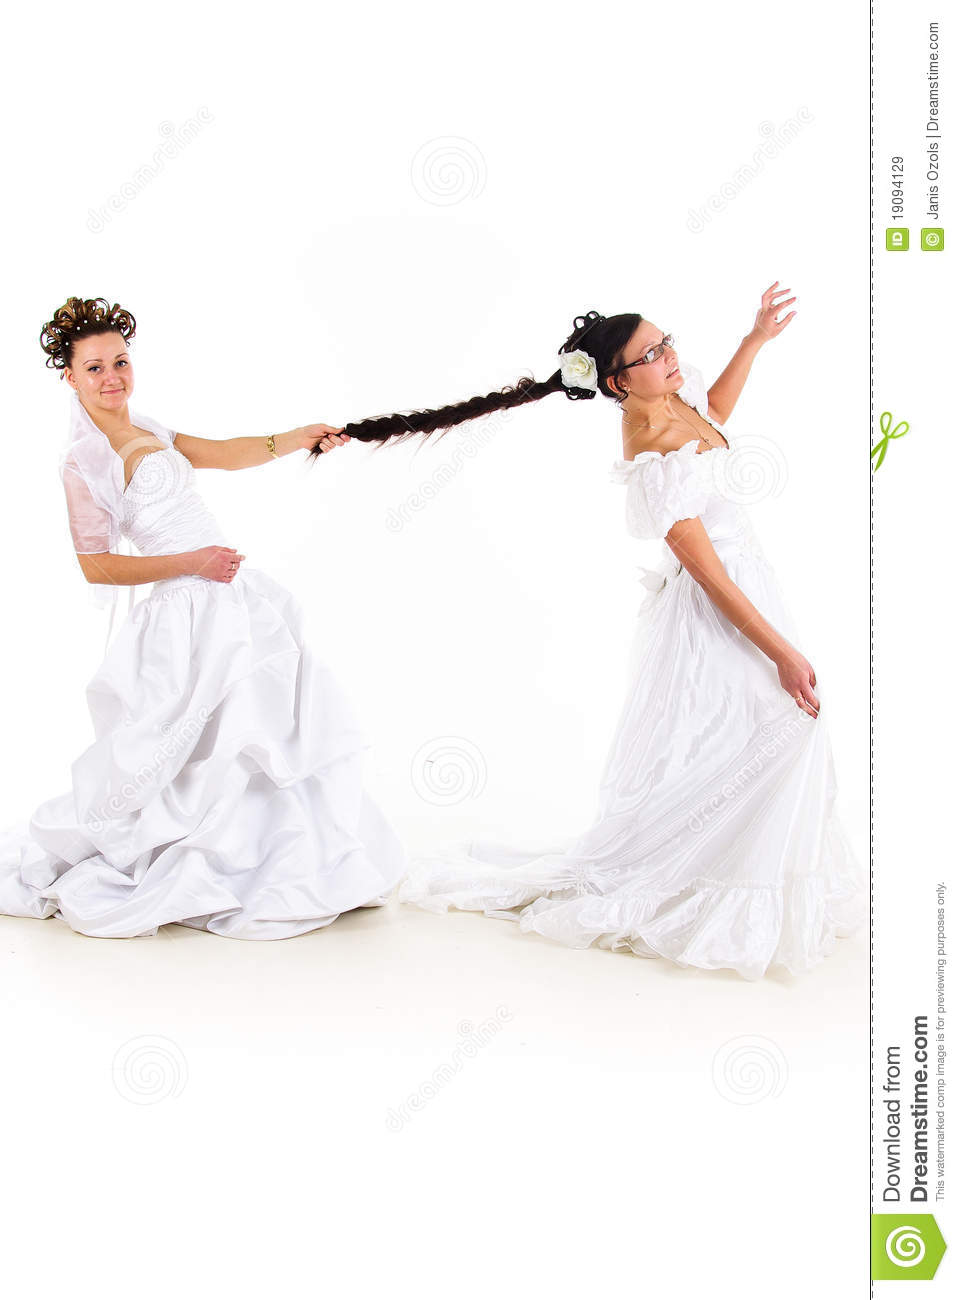 two brides fighting royalty free stock images image